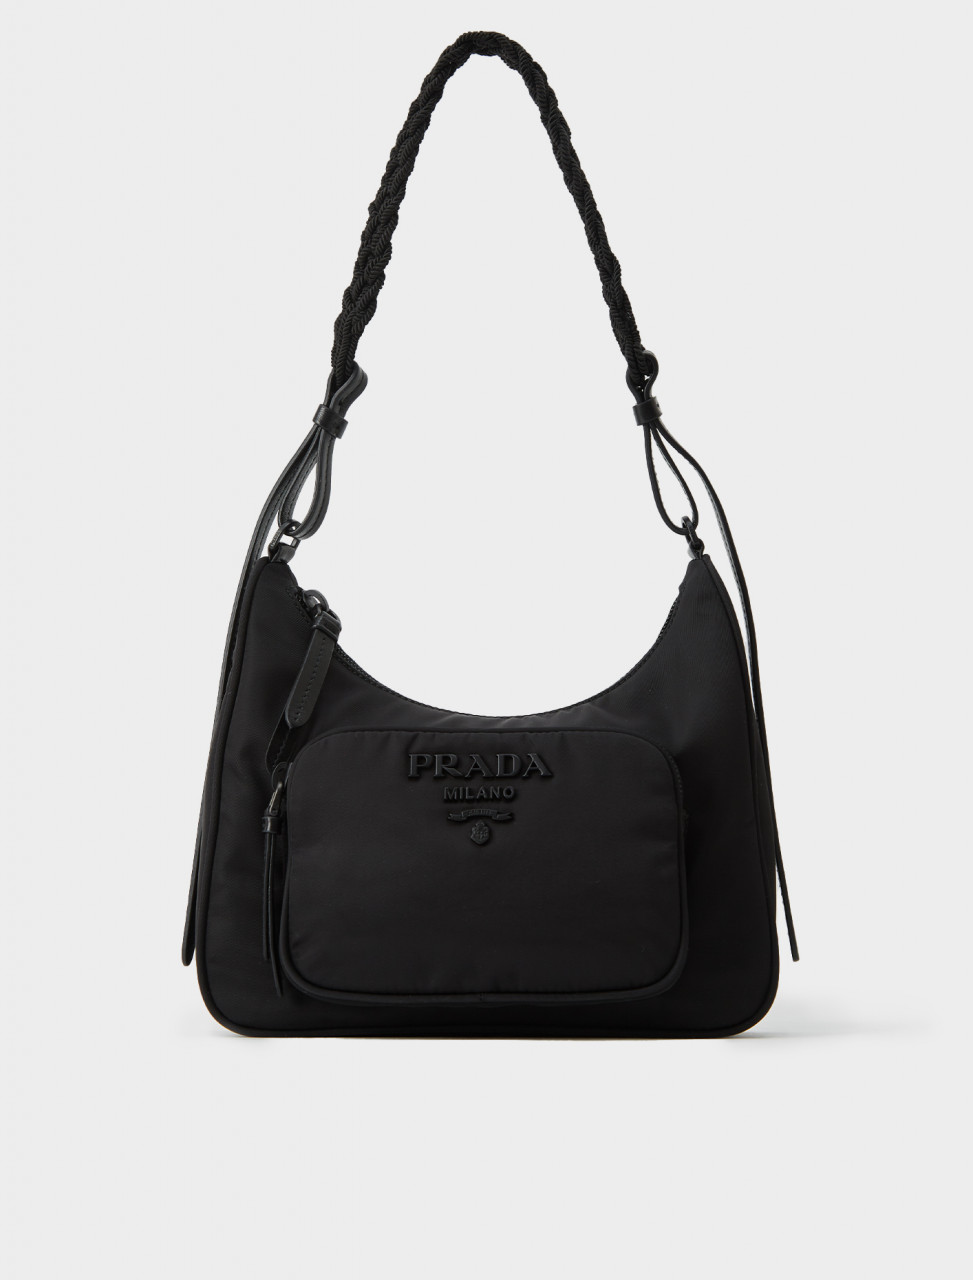 Prada Front Pocket Shoulder Bag in Black